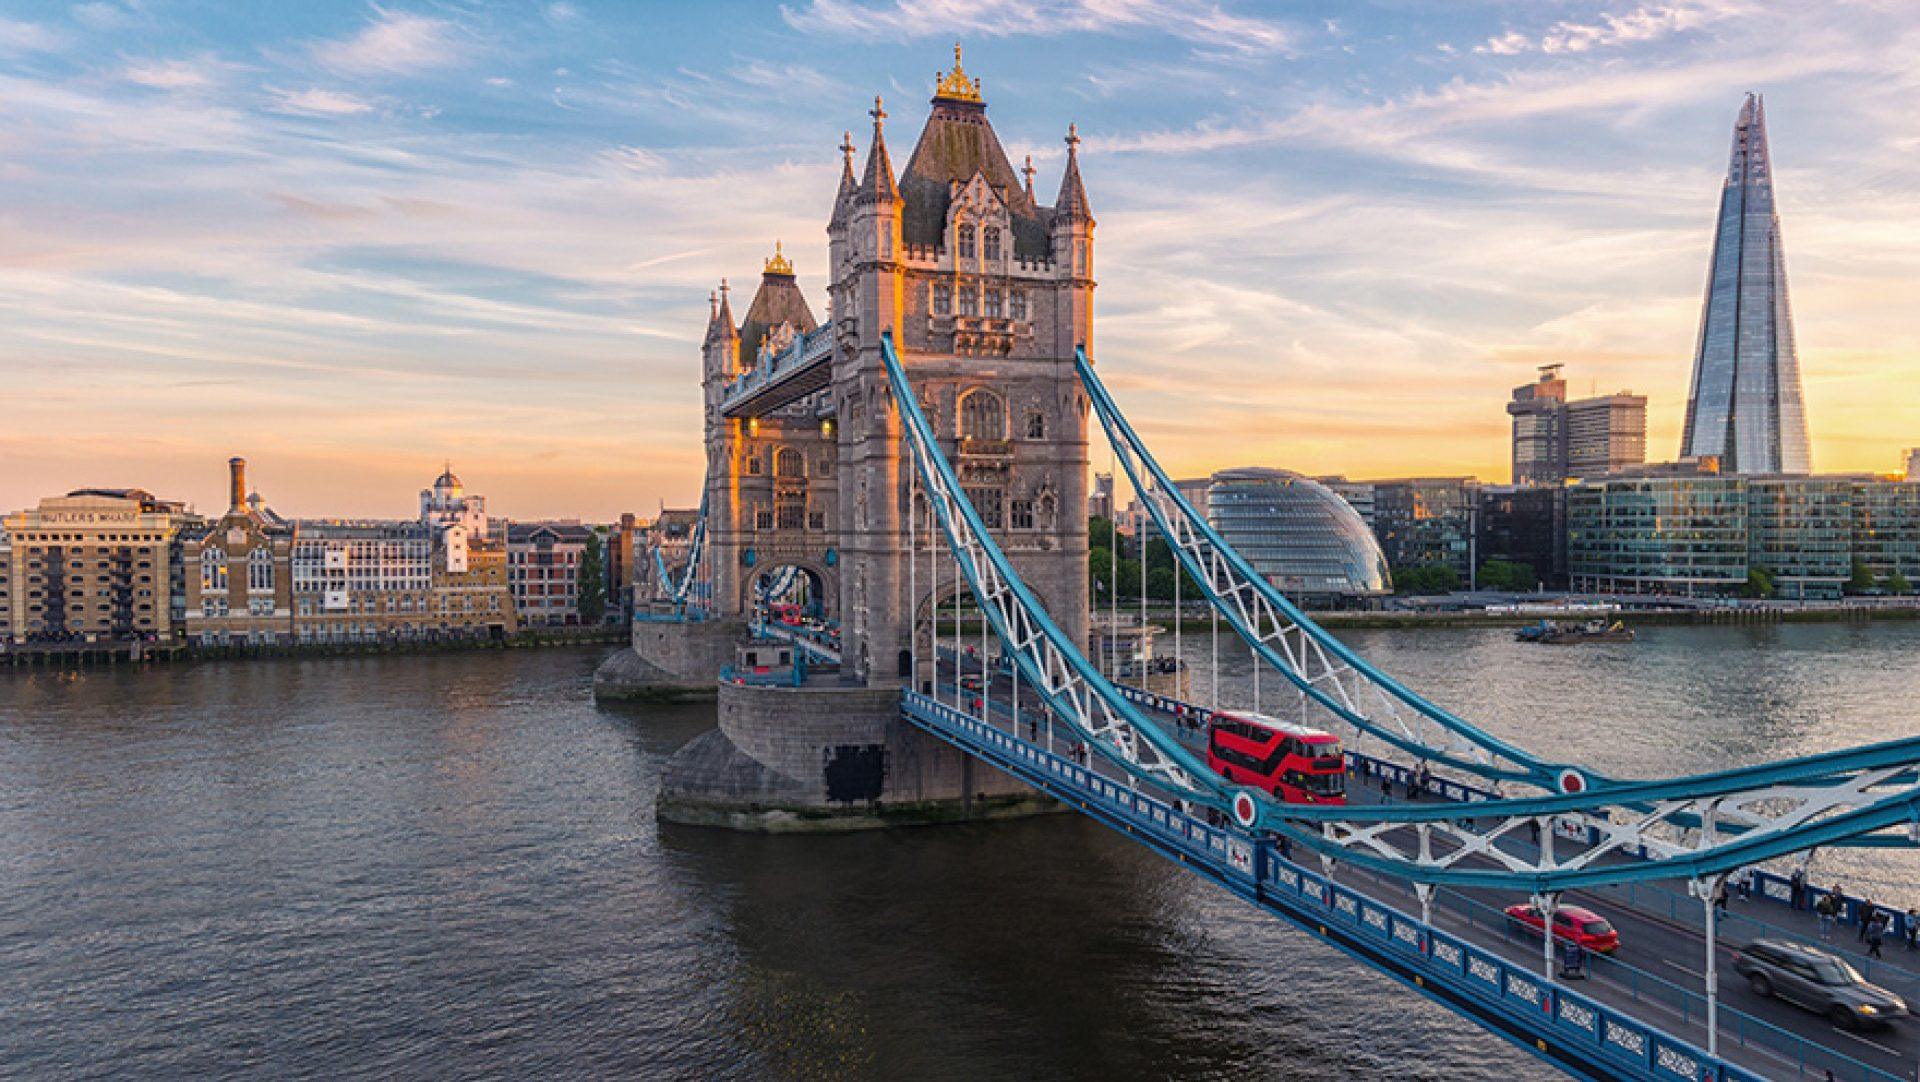 ecole-de-langue-londres-tower-bridge.jpg